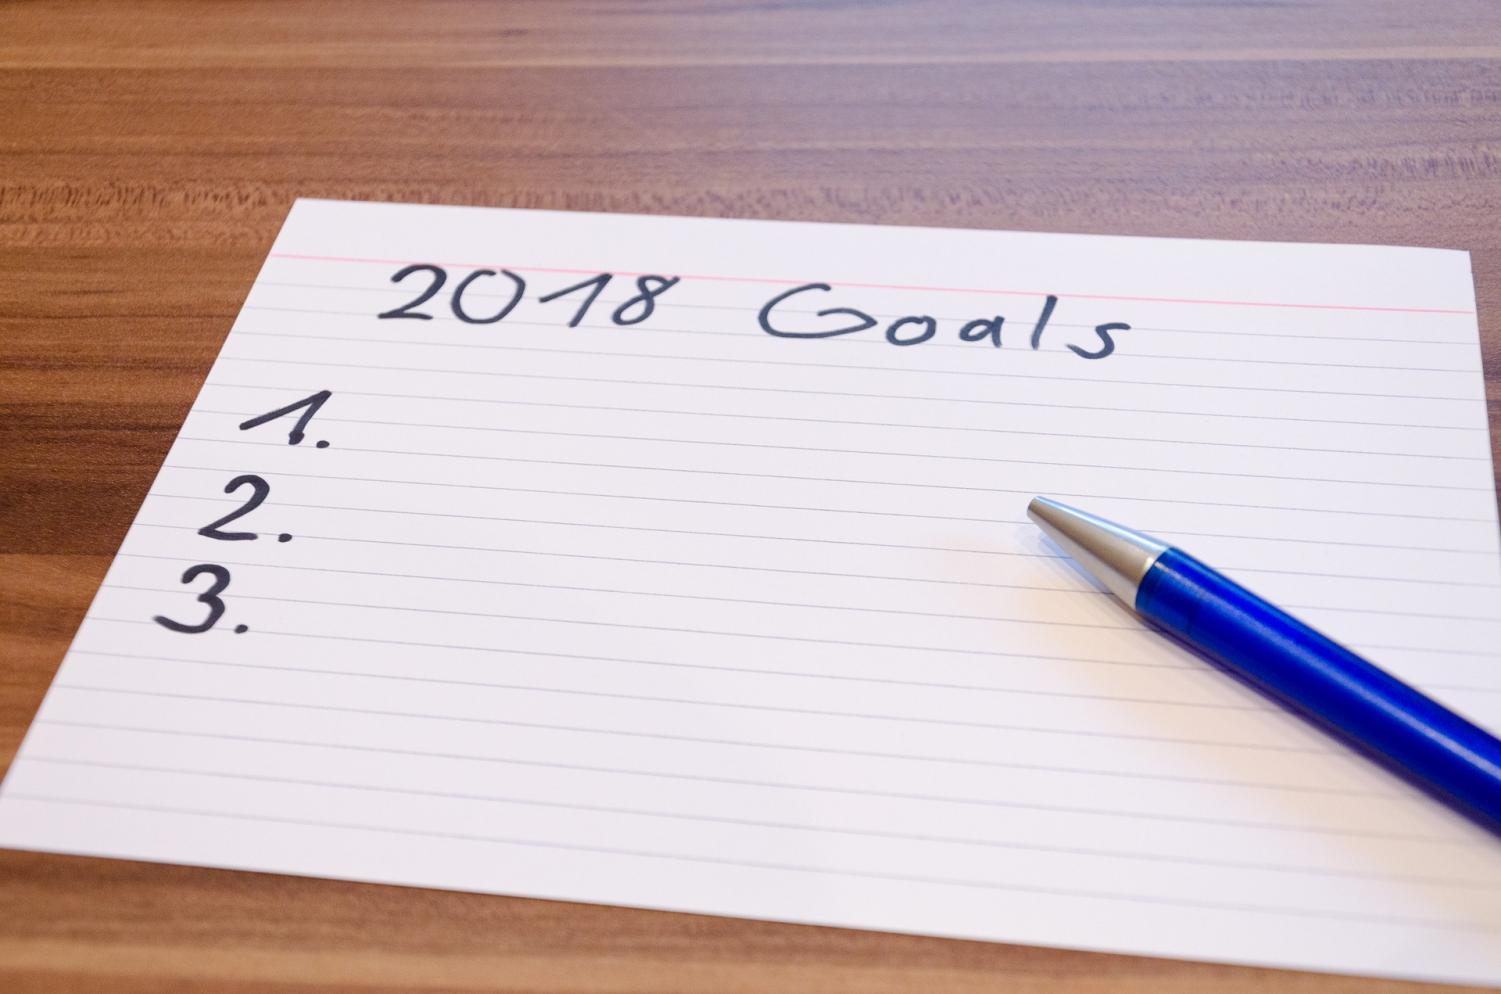 The El Paso High community takes on 2018 with new goals.